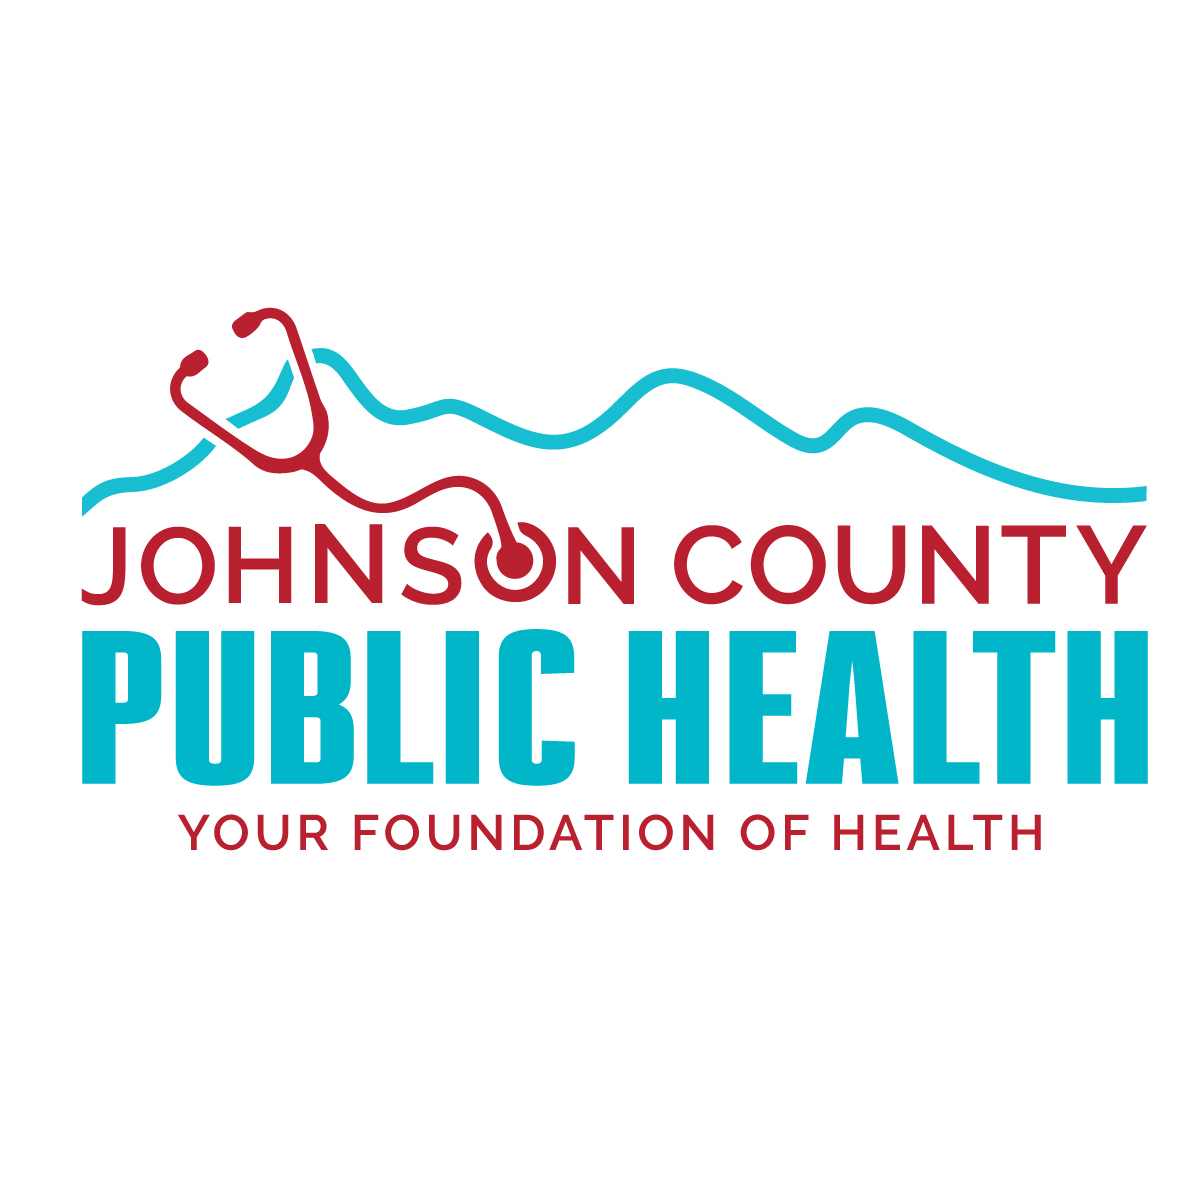 Johnson County Public Health Logo design